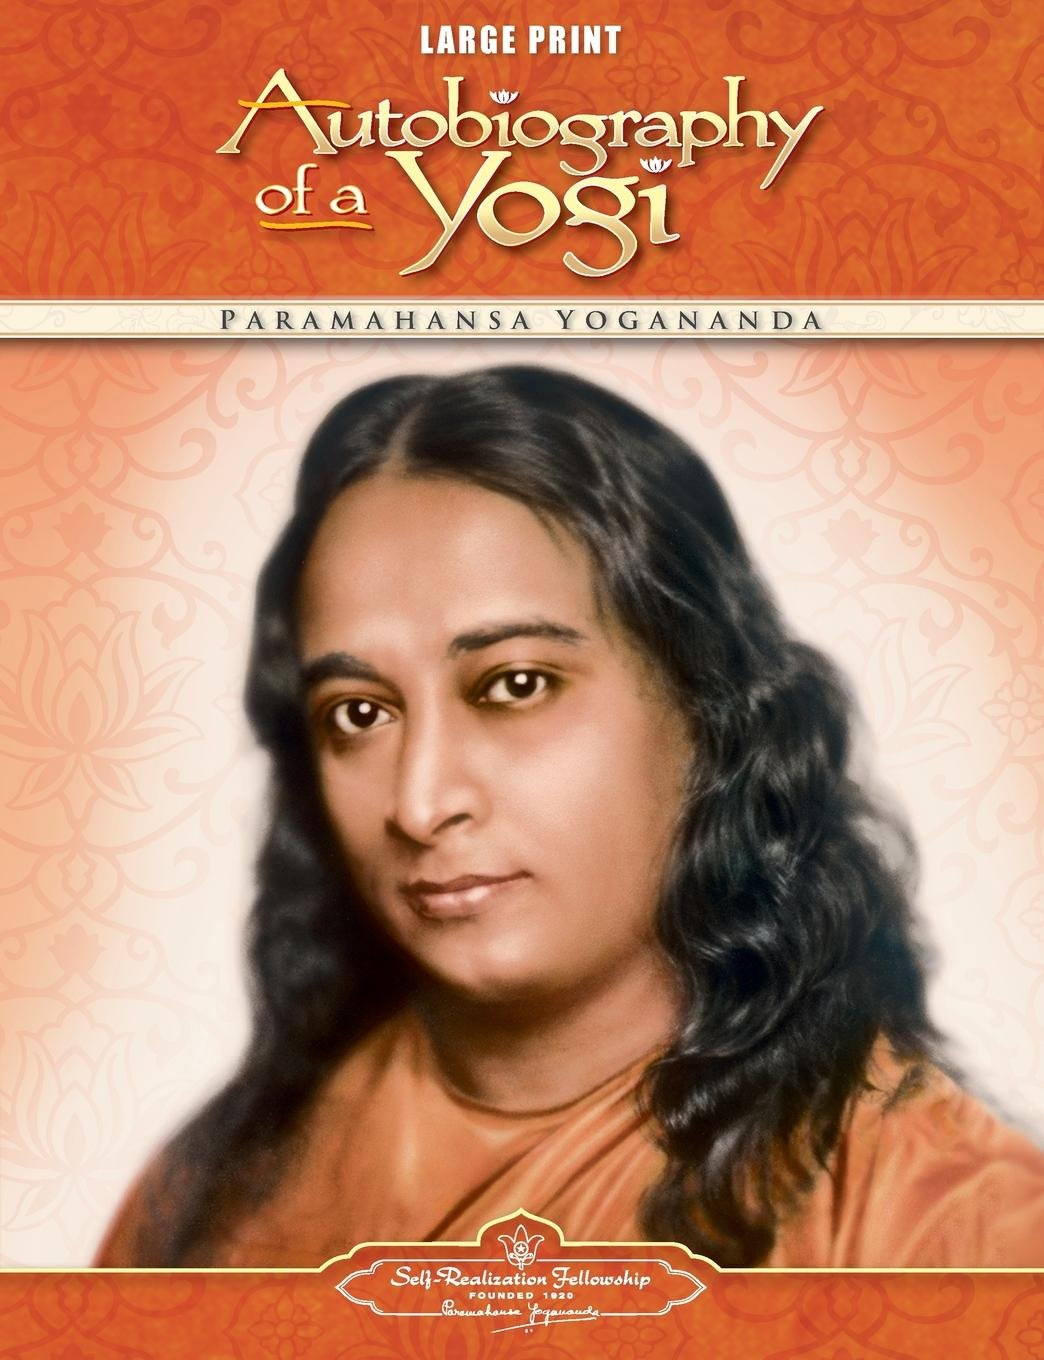 Autobiography of a Yogi - Large Print Edition (Self-Realization Fellowship) pdf epub